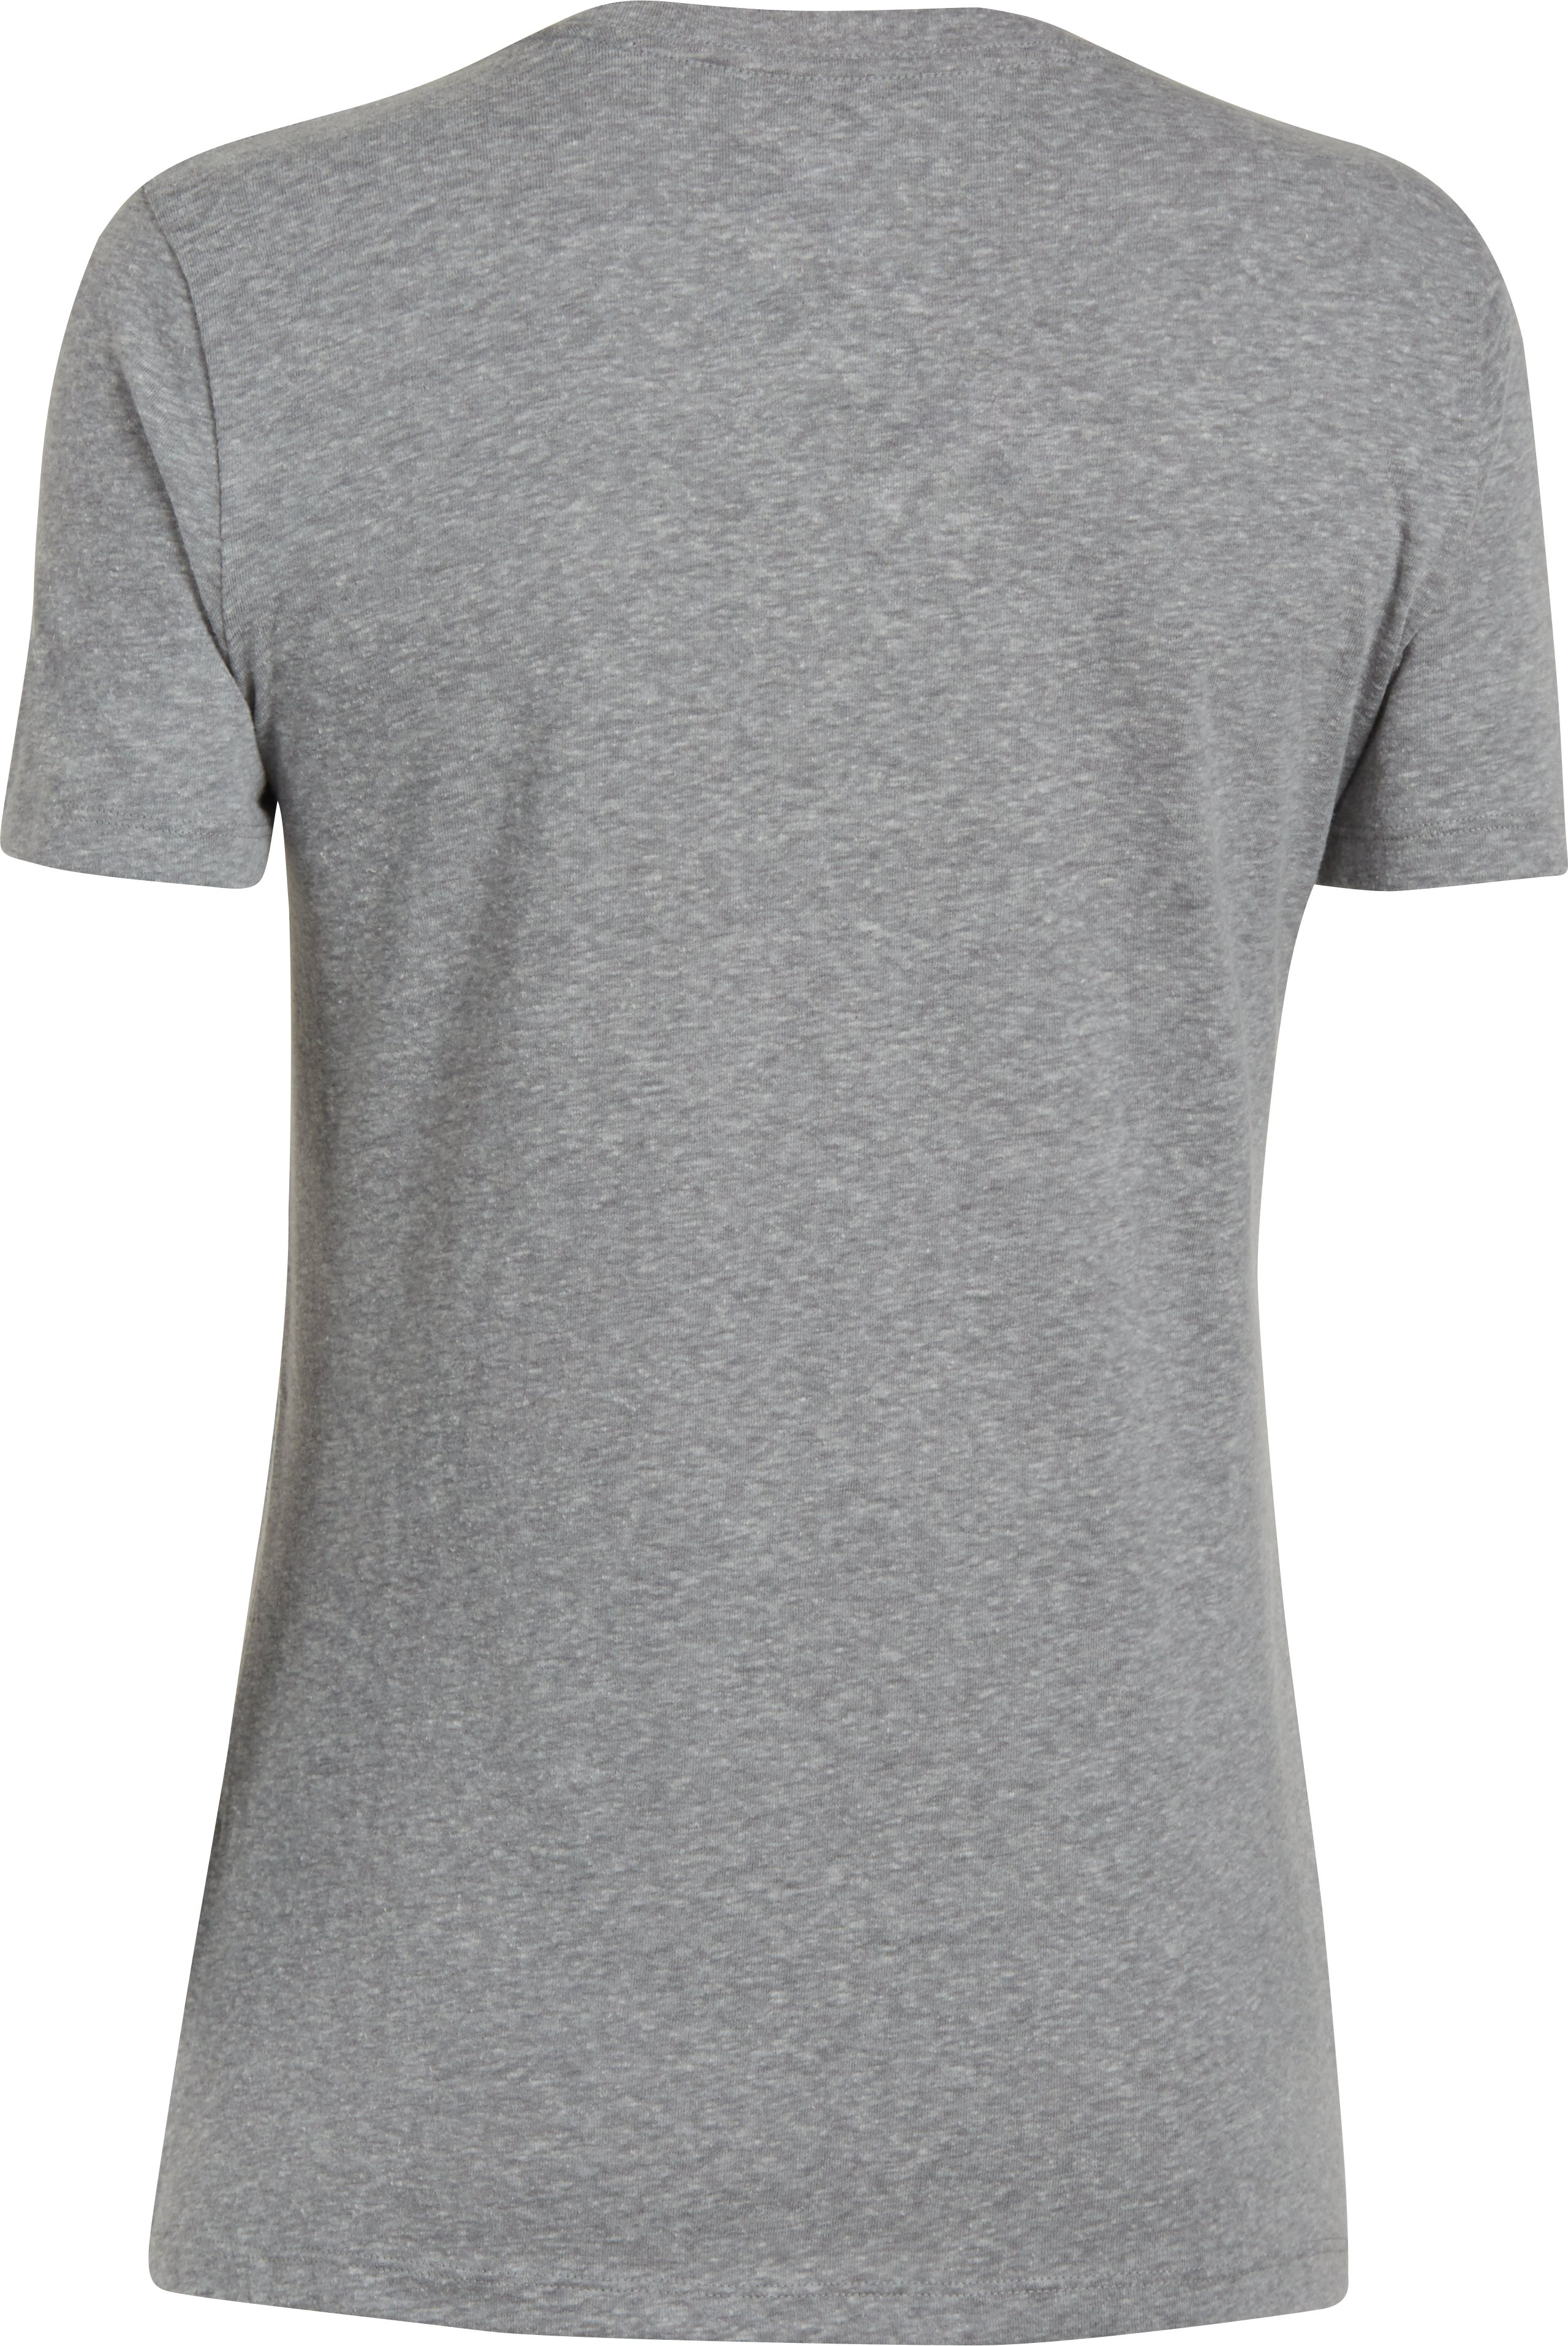 Women's Under Armour® Alter Ego Wonder Woman T-Shirt, True Gray Heather, undefined